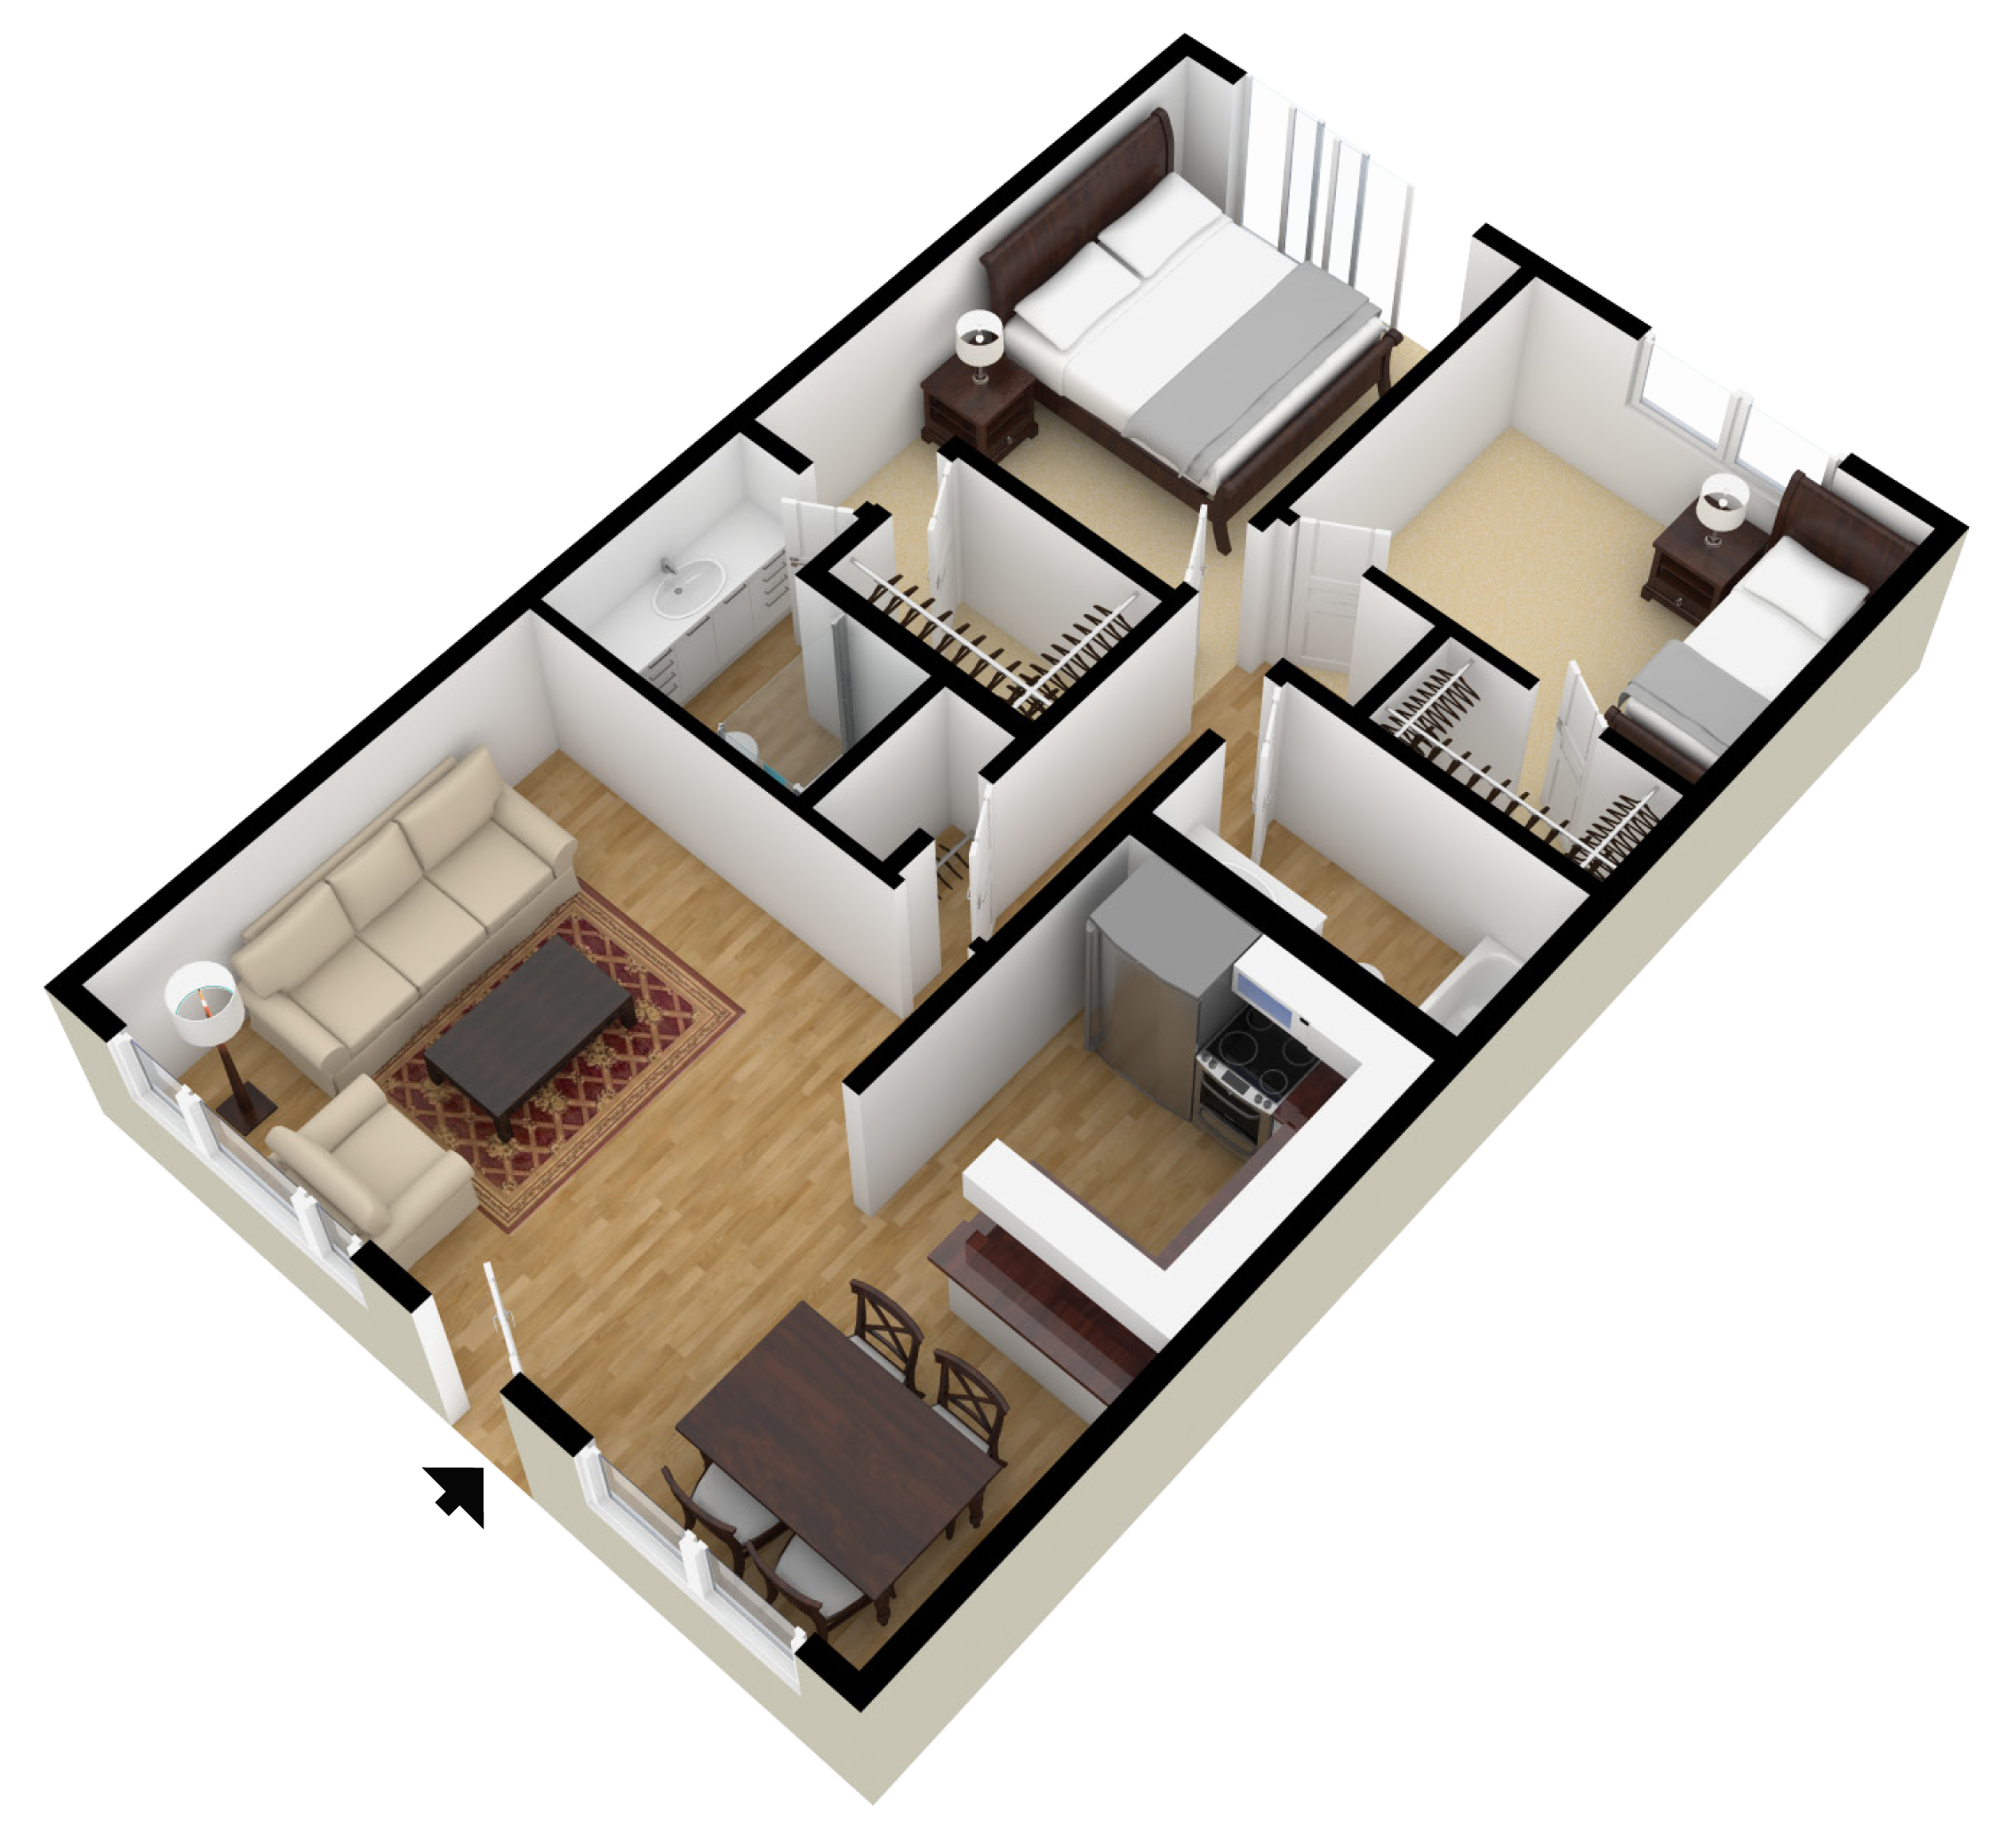 Garage Floor Plans With Apartments Studio 1 Amp 2 Bedroom Floor Plans City Plaza Apartments